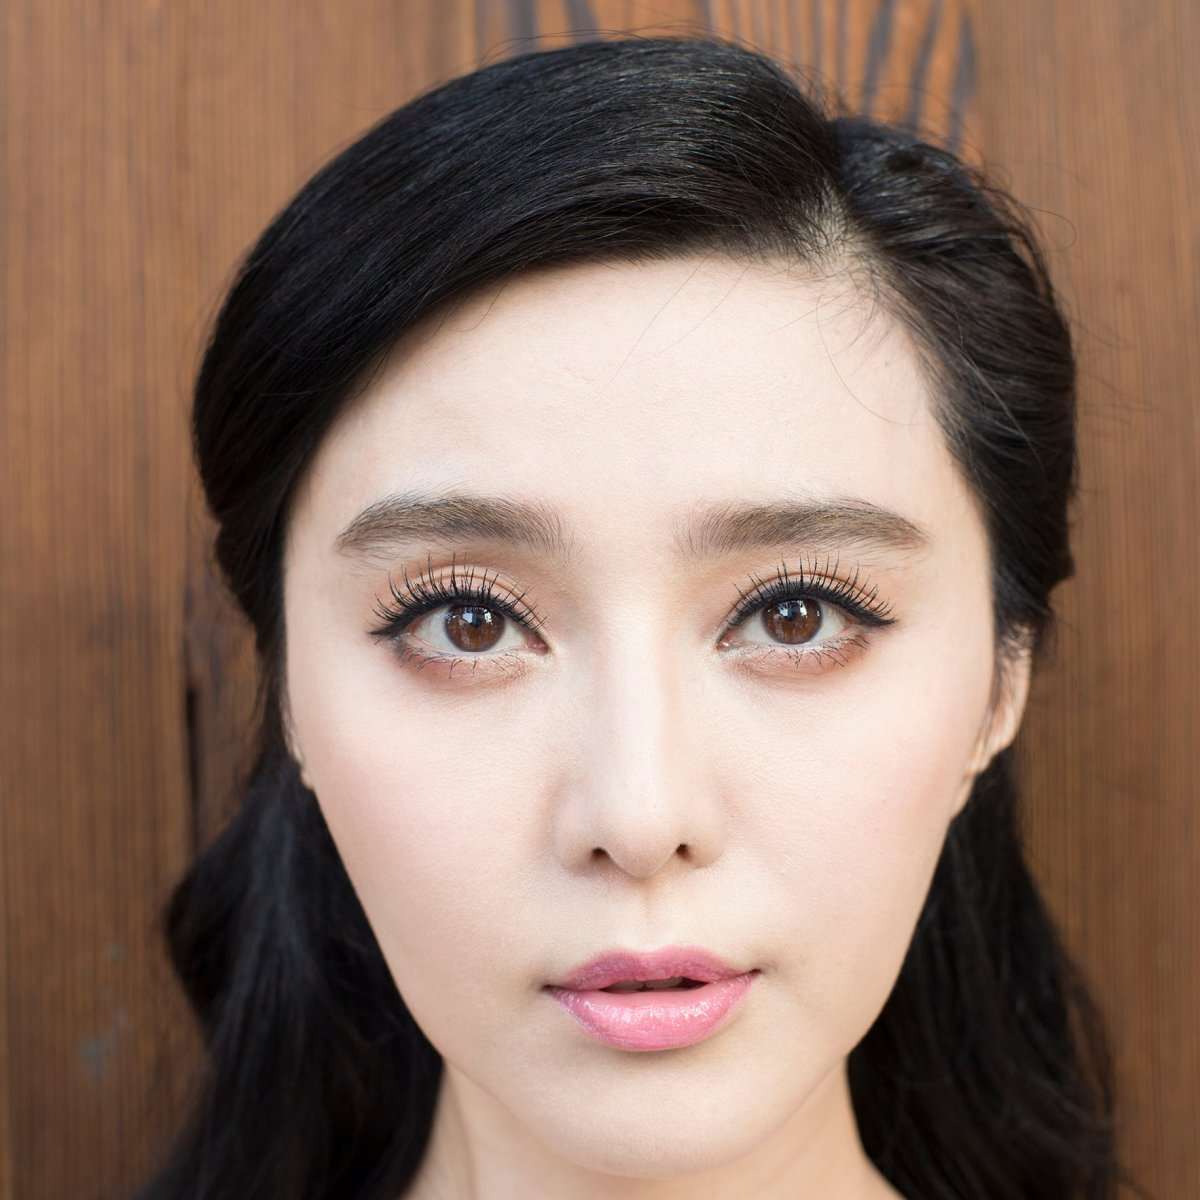 time-100-2017-fan-bingbing